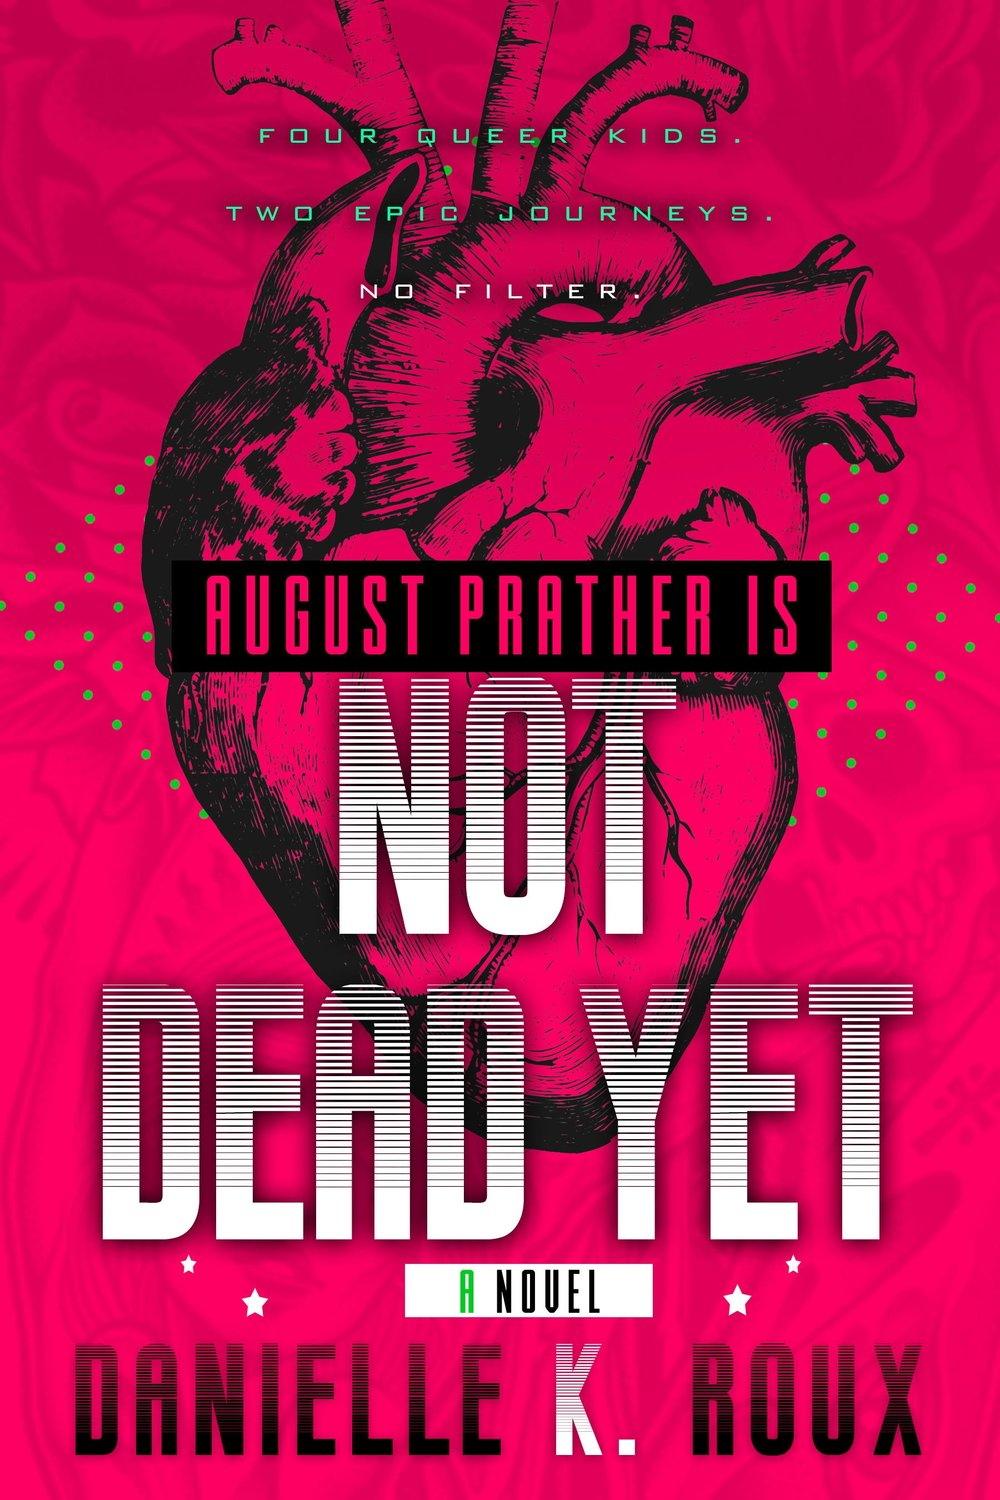 August Prather is Not Dead Yet - An LGBTQ+ New Adult Fantasy Novel featuring: queer immortals, road trips, epic quests for the elixir of life, bad behavior, romance, and a robot magician.Buy it here. Or here. Or also here.Add to your tbr here.